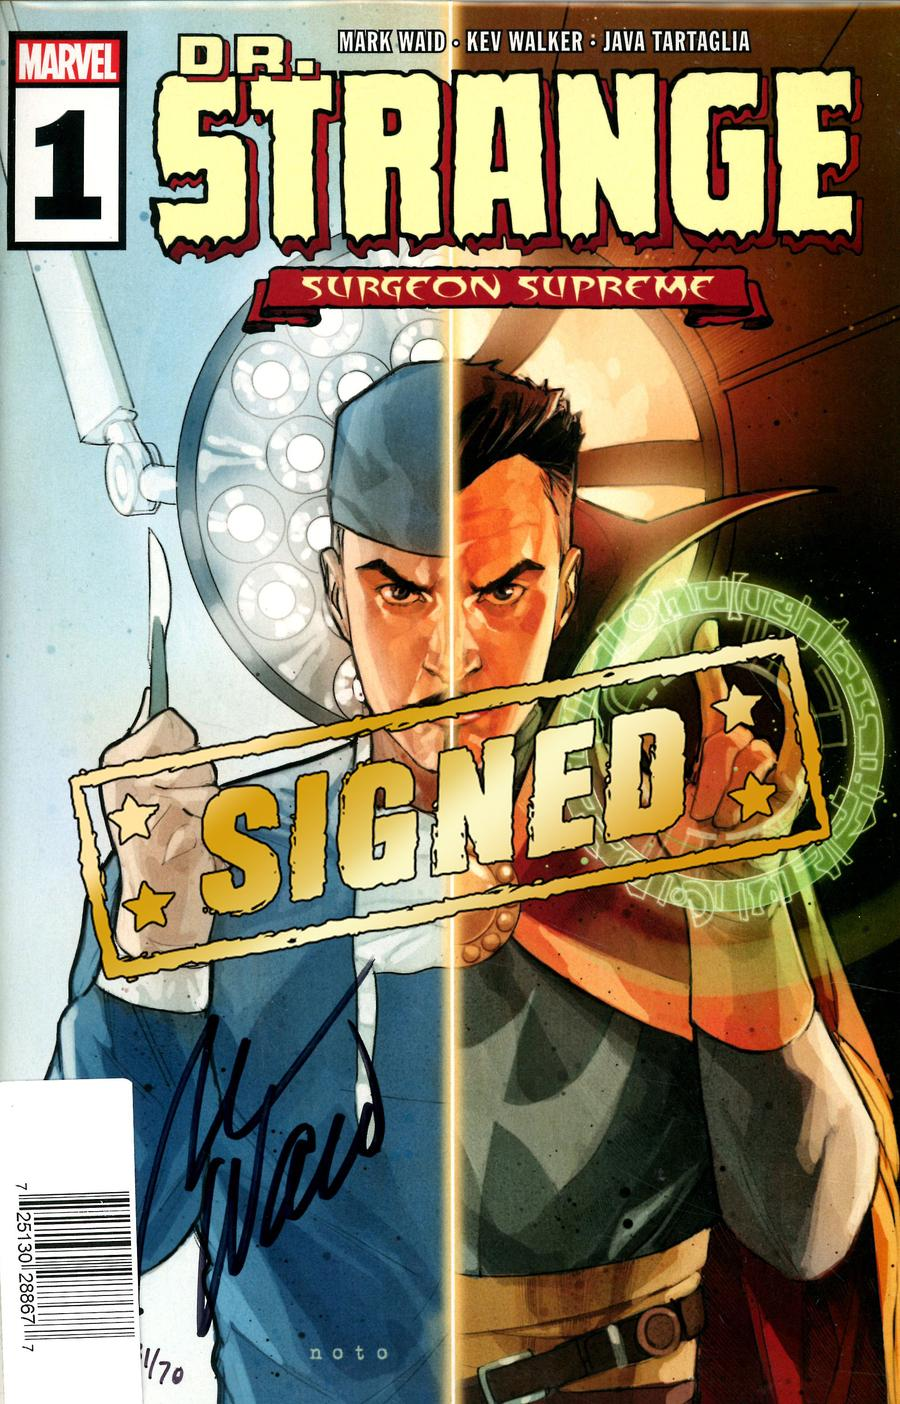 Doctor Strange Surgeon Supreme #1 Cover F DF Signed By Mark Waid